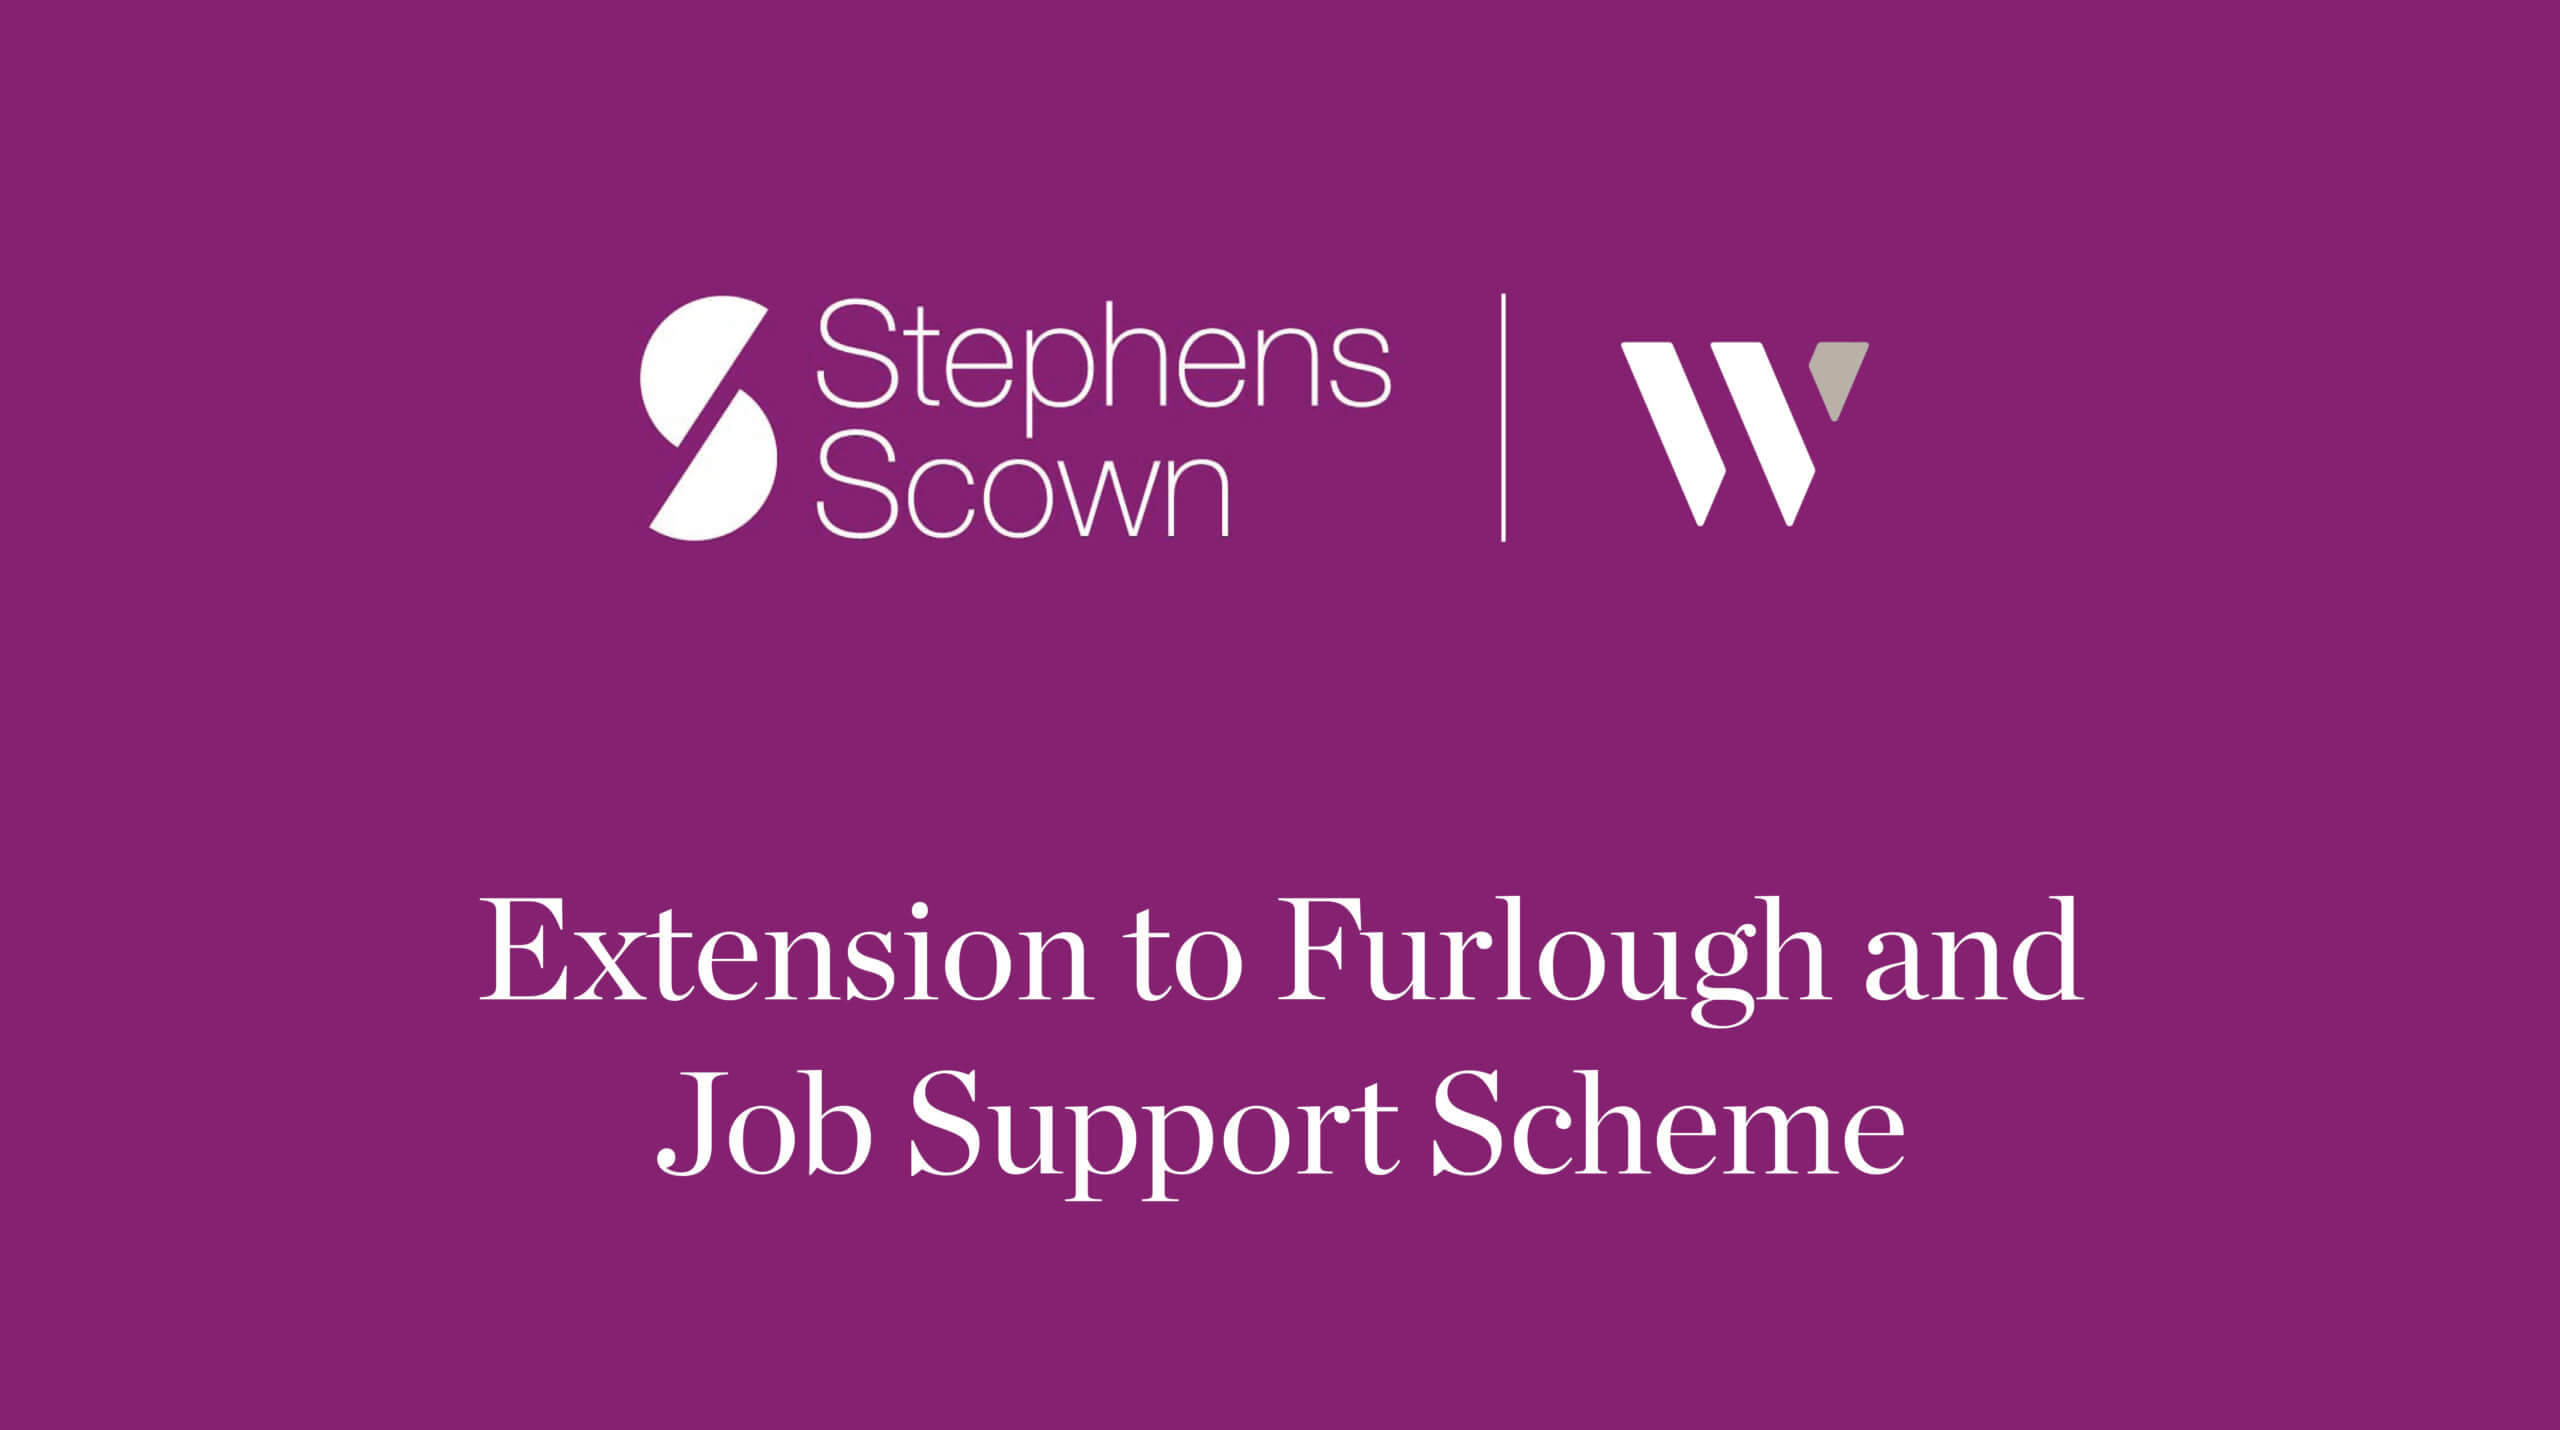 Hear it from the Experts: Extension to Furlough and Job Support Scheme - Stephens Scown